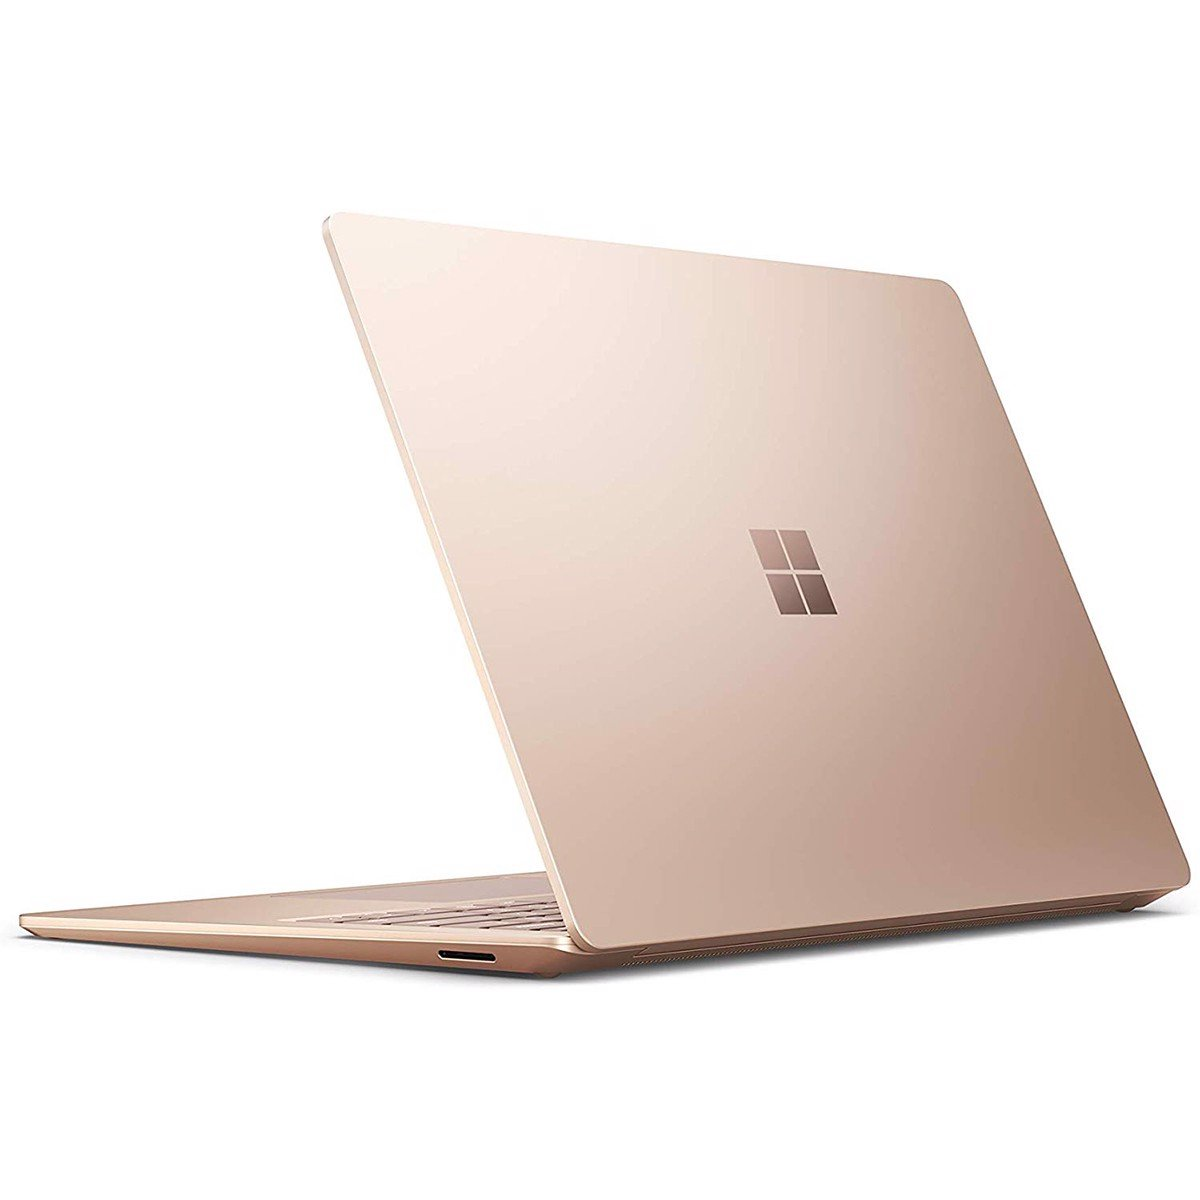 Surface Laptop 3 (13.5 Inch, 2019) Core I5 1035G7 / 8GB / 128GB (NEW)